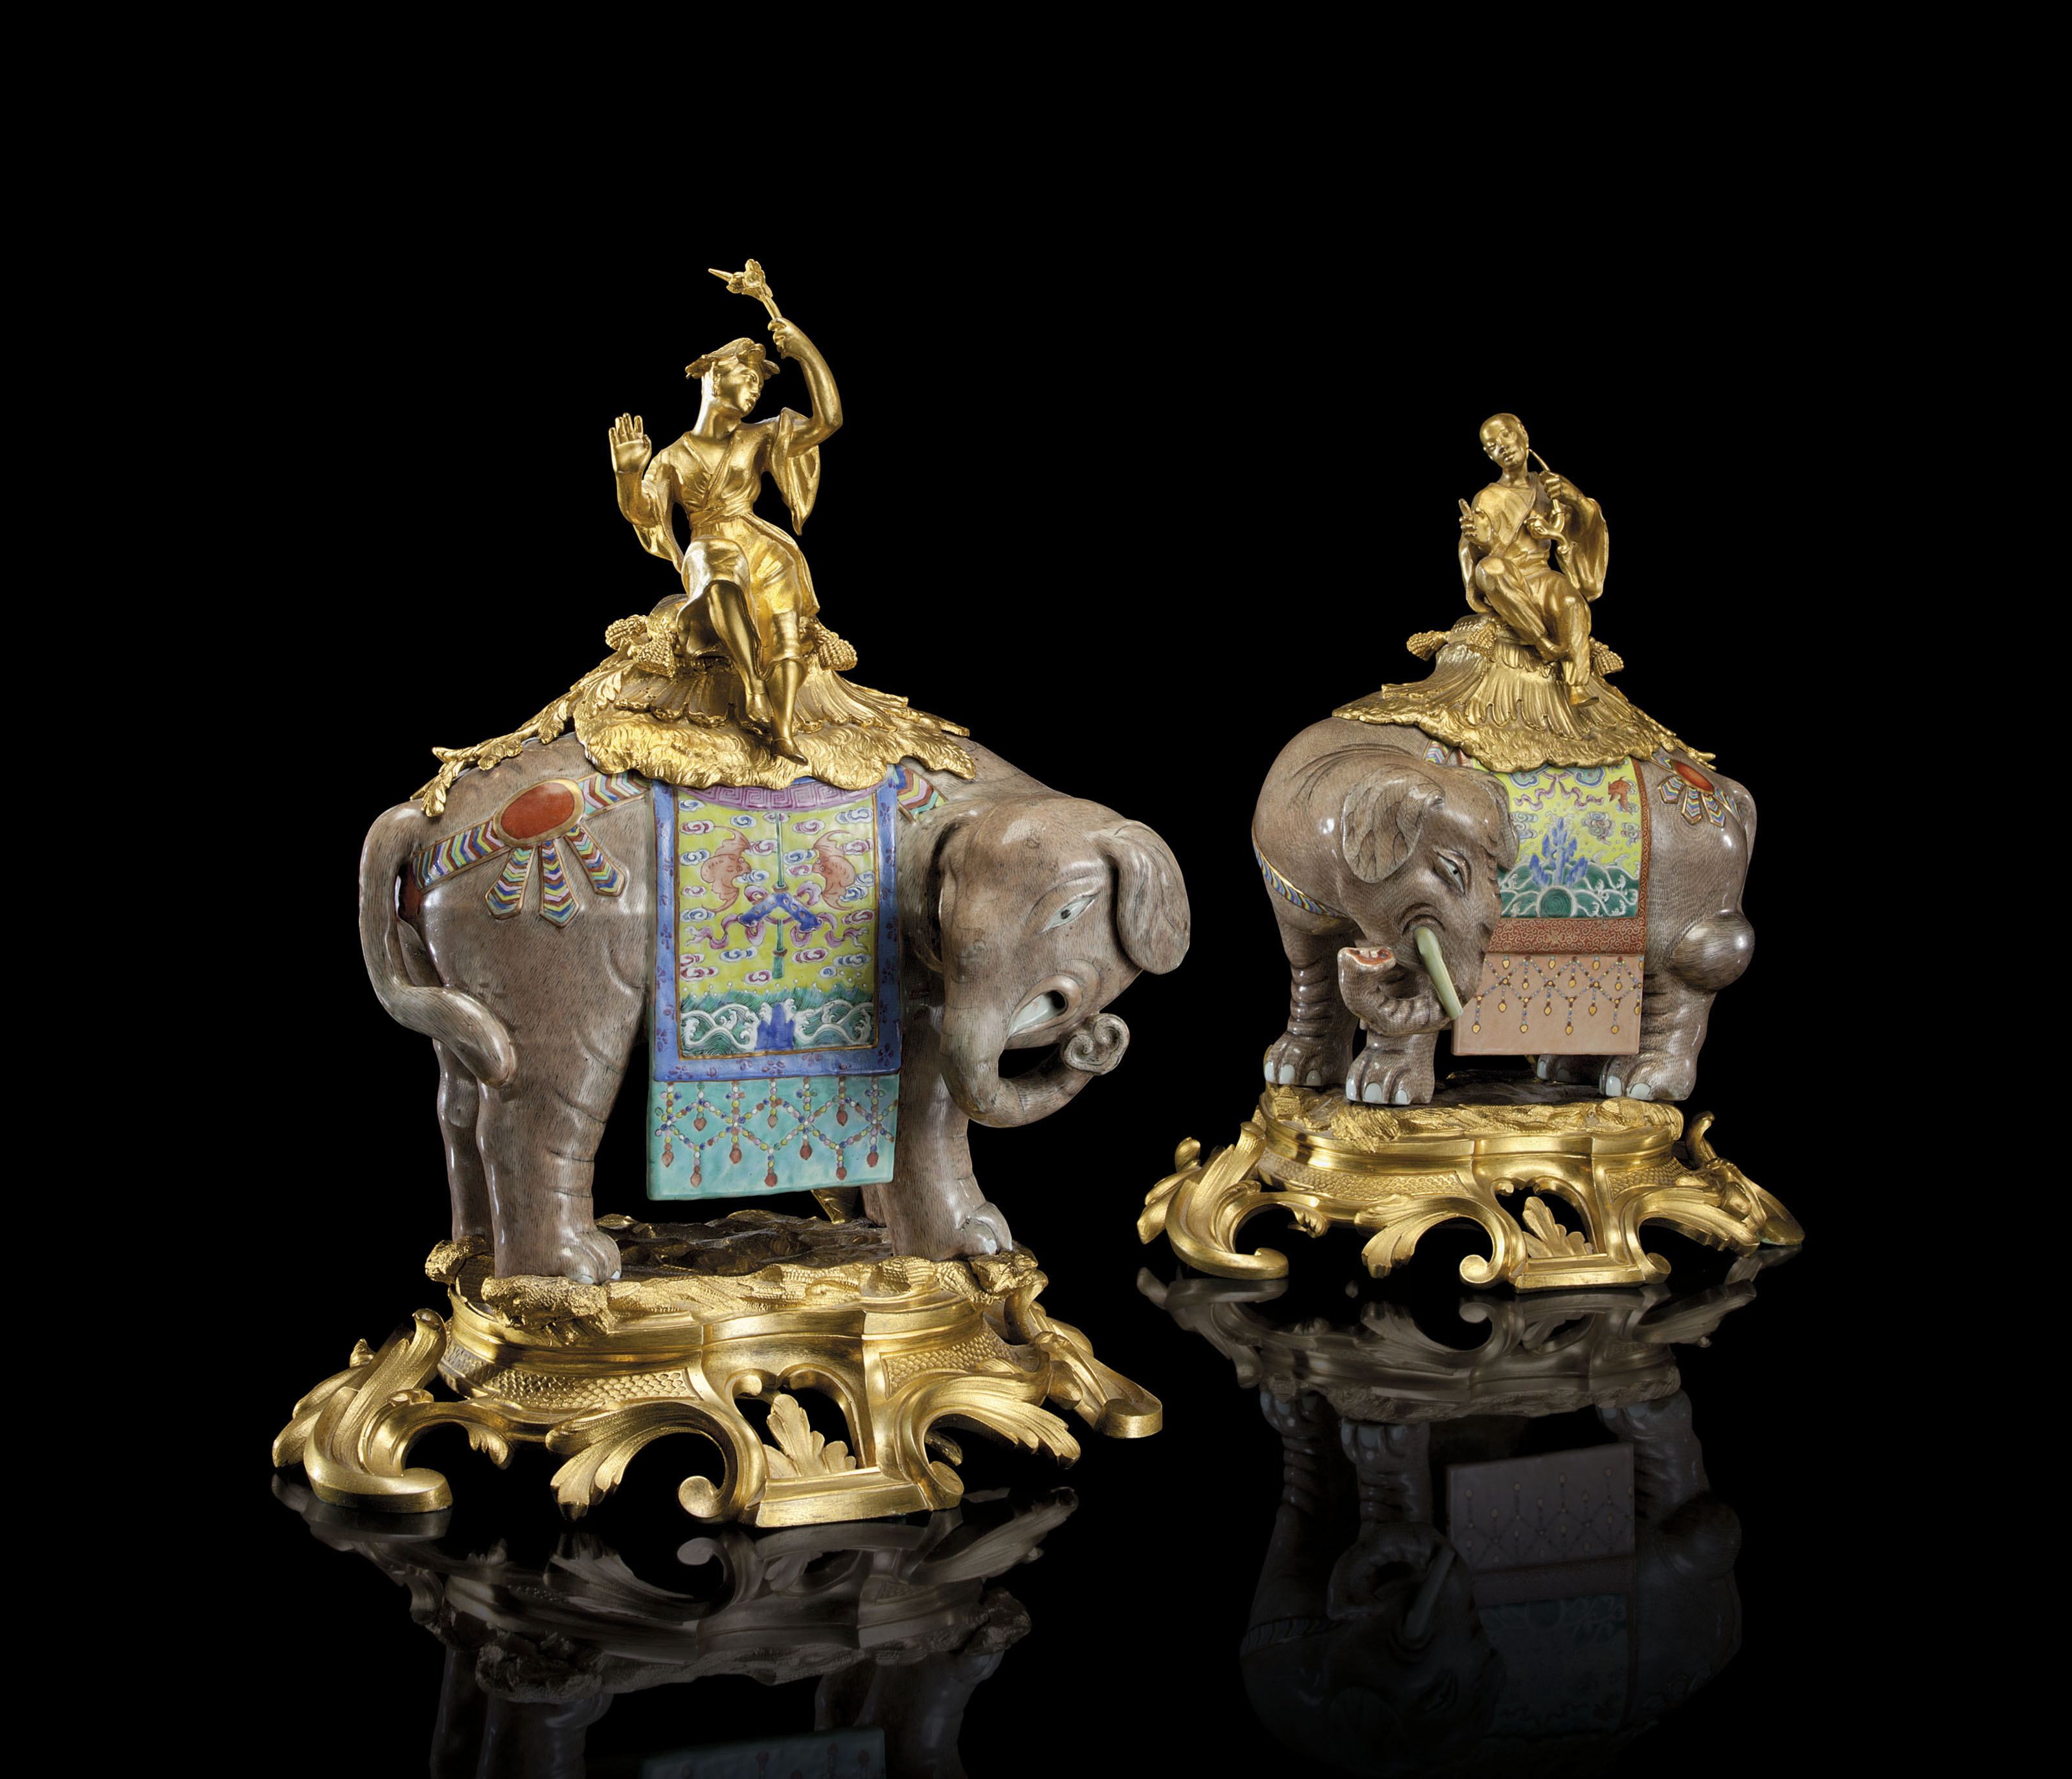 A PAIR OF ORMOLU-MOUNTED CHINESE PORCELAIN ELEPHANTS | JIAQING